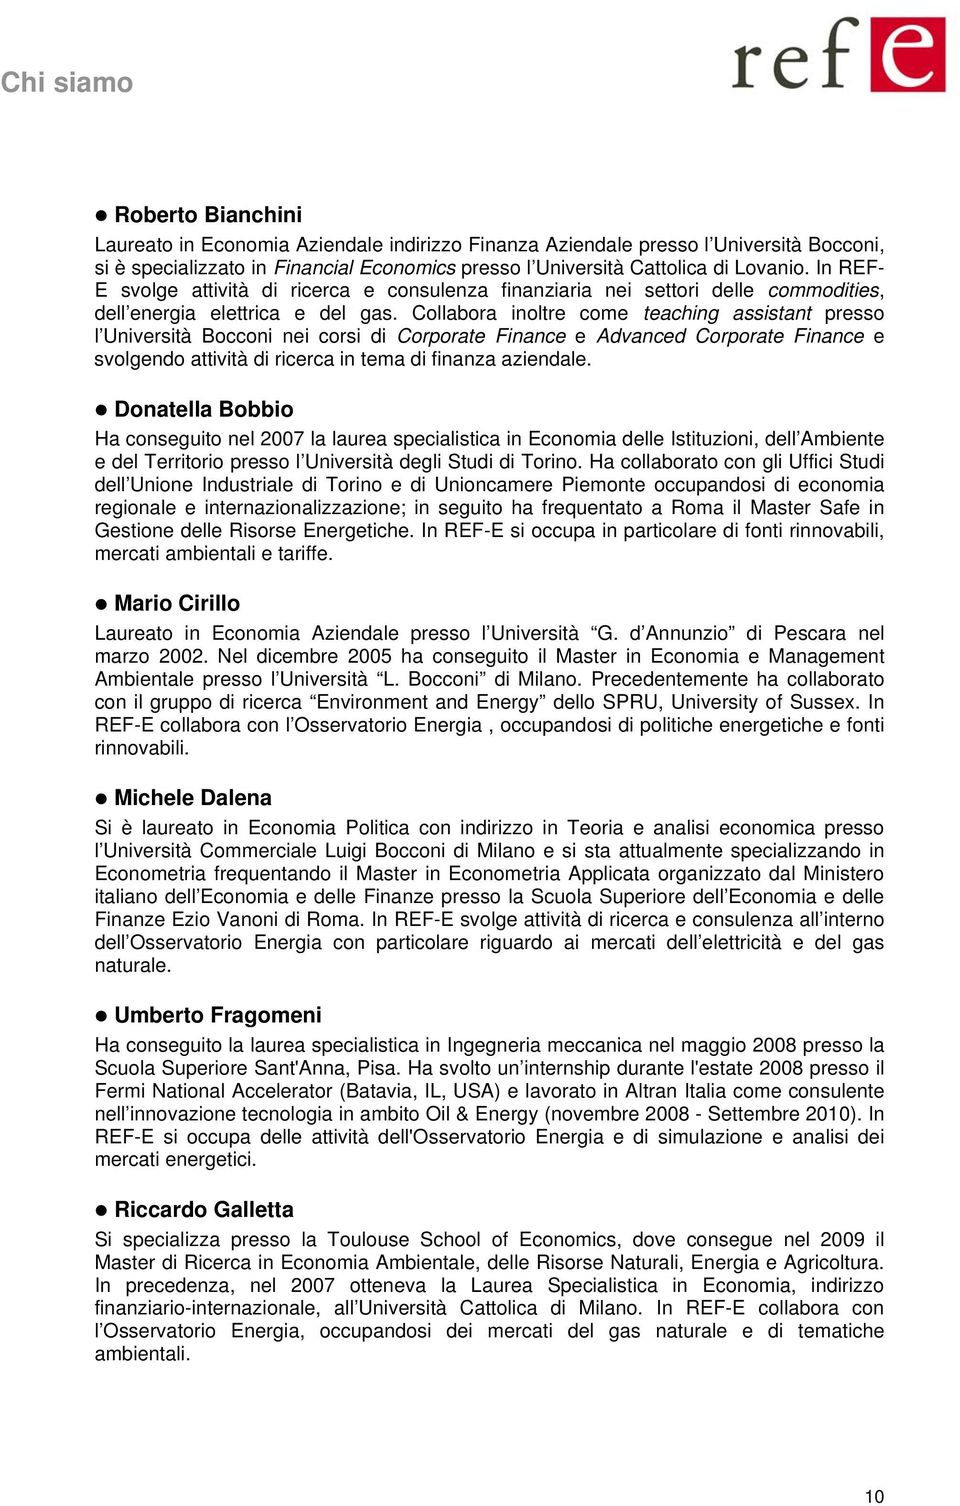 Collabora inoltre come teaching assistant presso l Università Bocconi nei corsi di Corporate Finance e Advanced Corporate Finance e svolgendo attività di ricerca in tema di finanza aziendale.